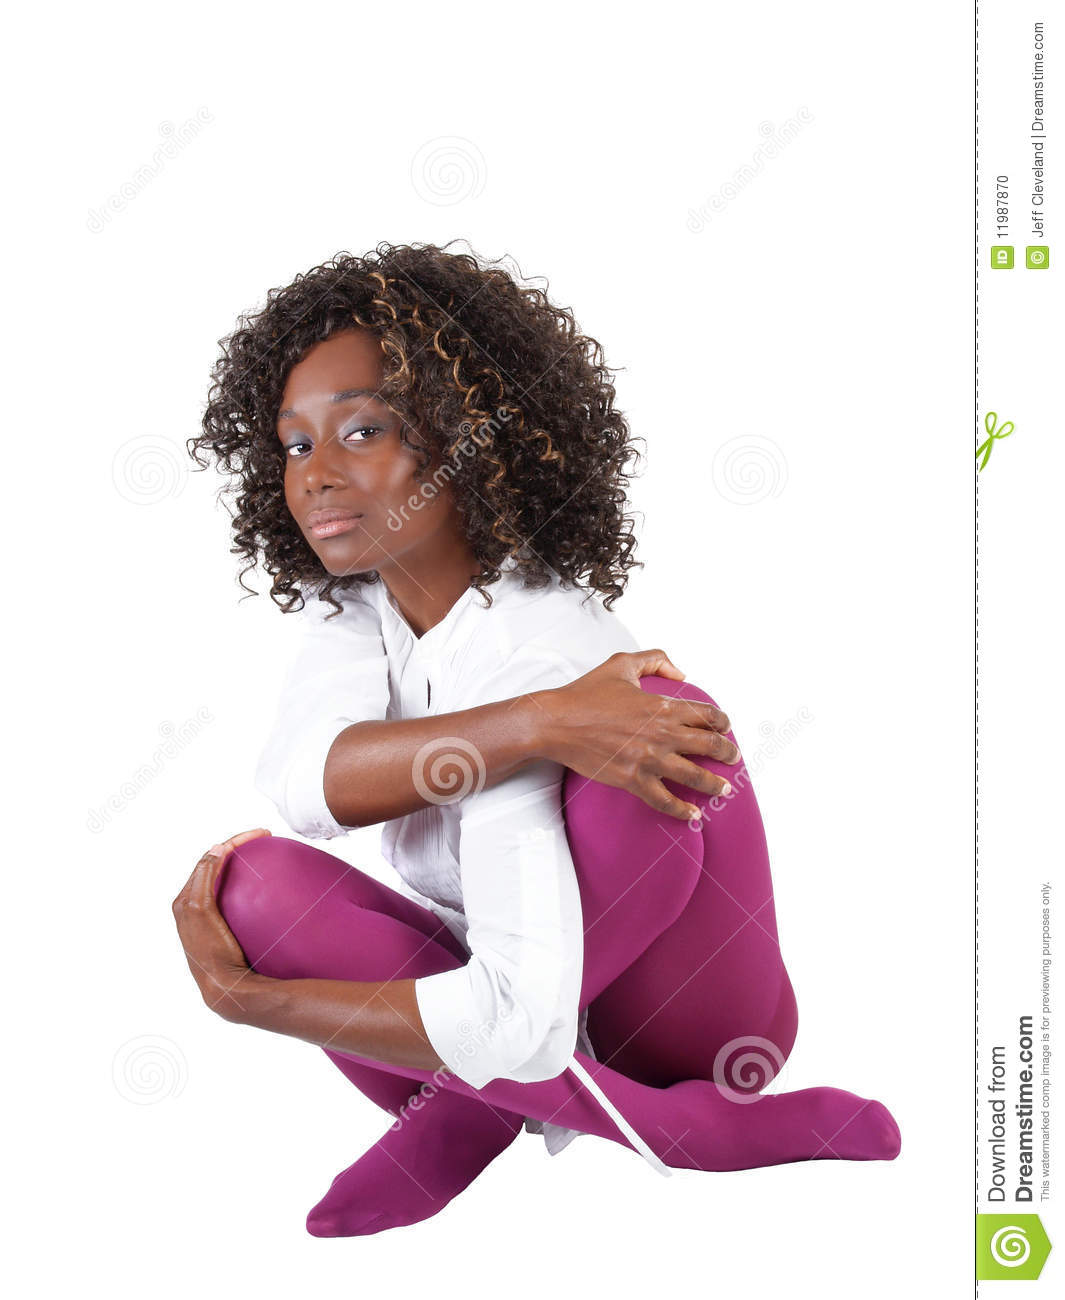 Tons of free Black Girl In Tights porn videos and XXX movies are waiting for you on Redtube. Find the best Black Girl In Tights videos right here and discover why our sex tube is visited by millions of porn lovers daily. Nothing but the highest quality Black Girl In Tights porn on Redtube!